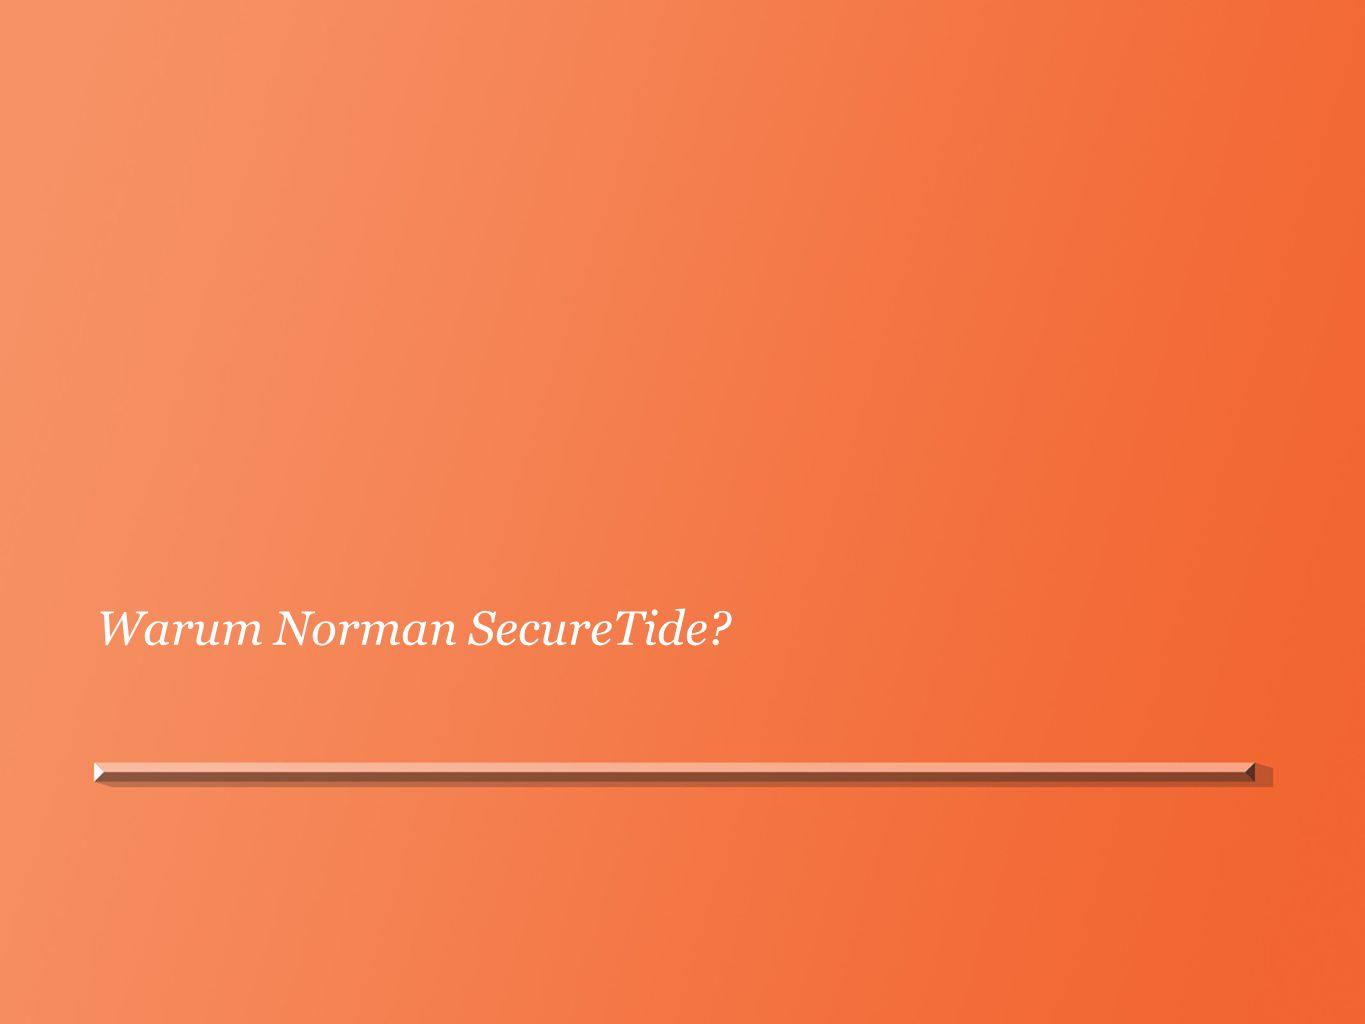 Warum Norman SecureTide